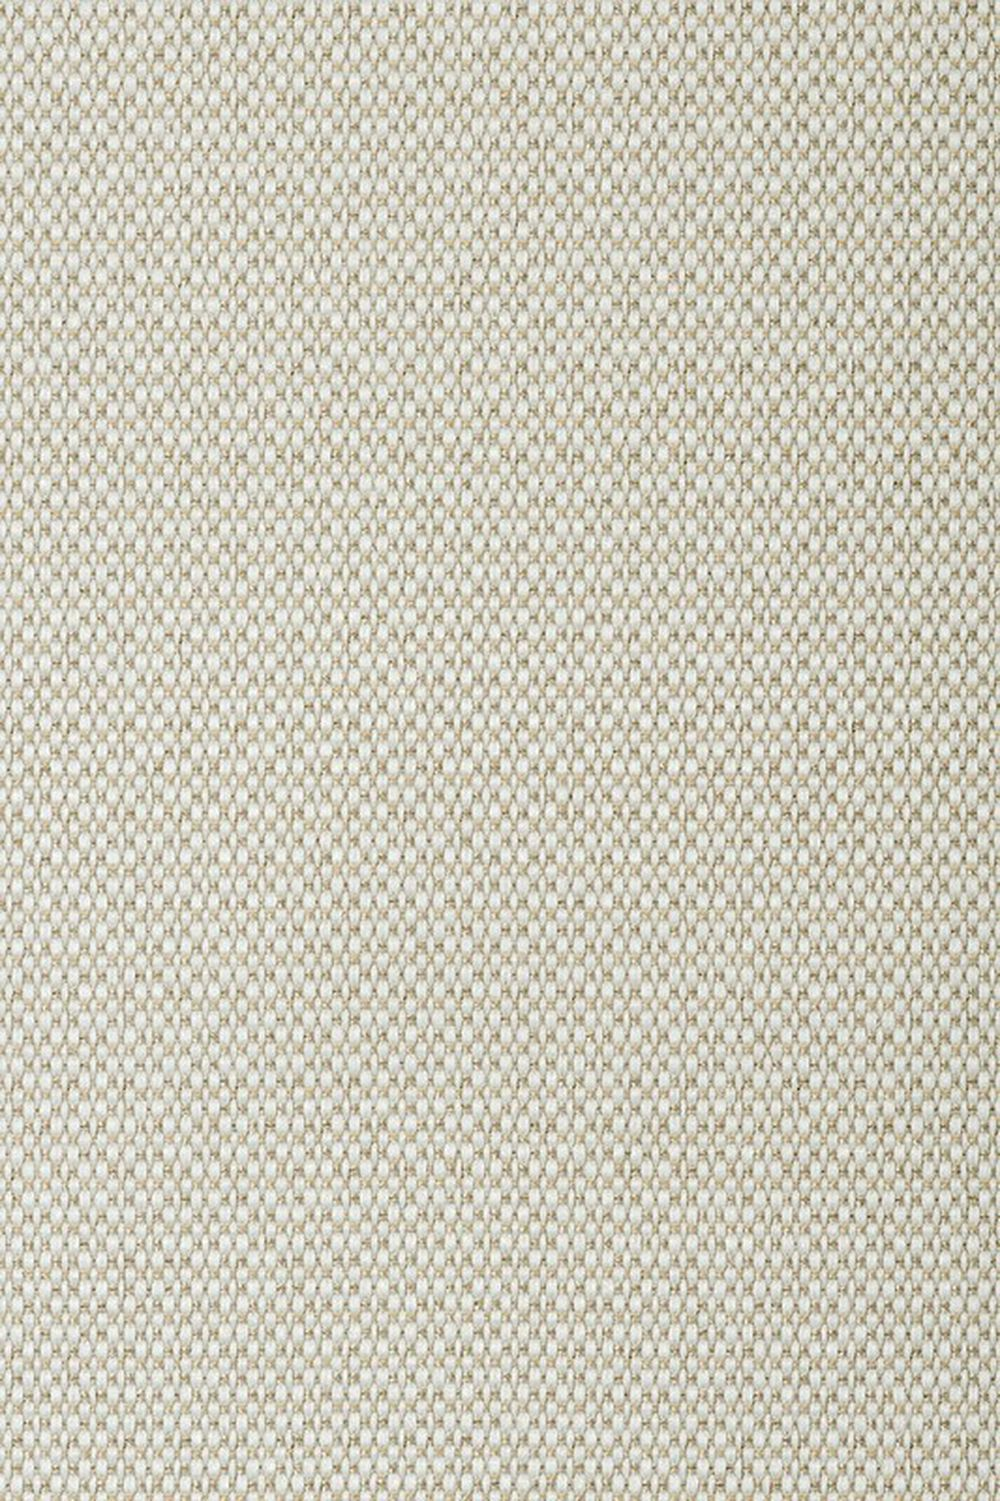 Photo of the fabric Reef Seashore swatch by Mokum. Use for Upholstery Heavy Duty, Accessory. Style of Plain, Texture